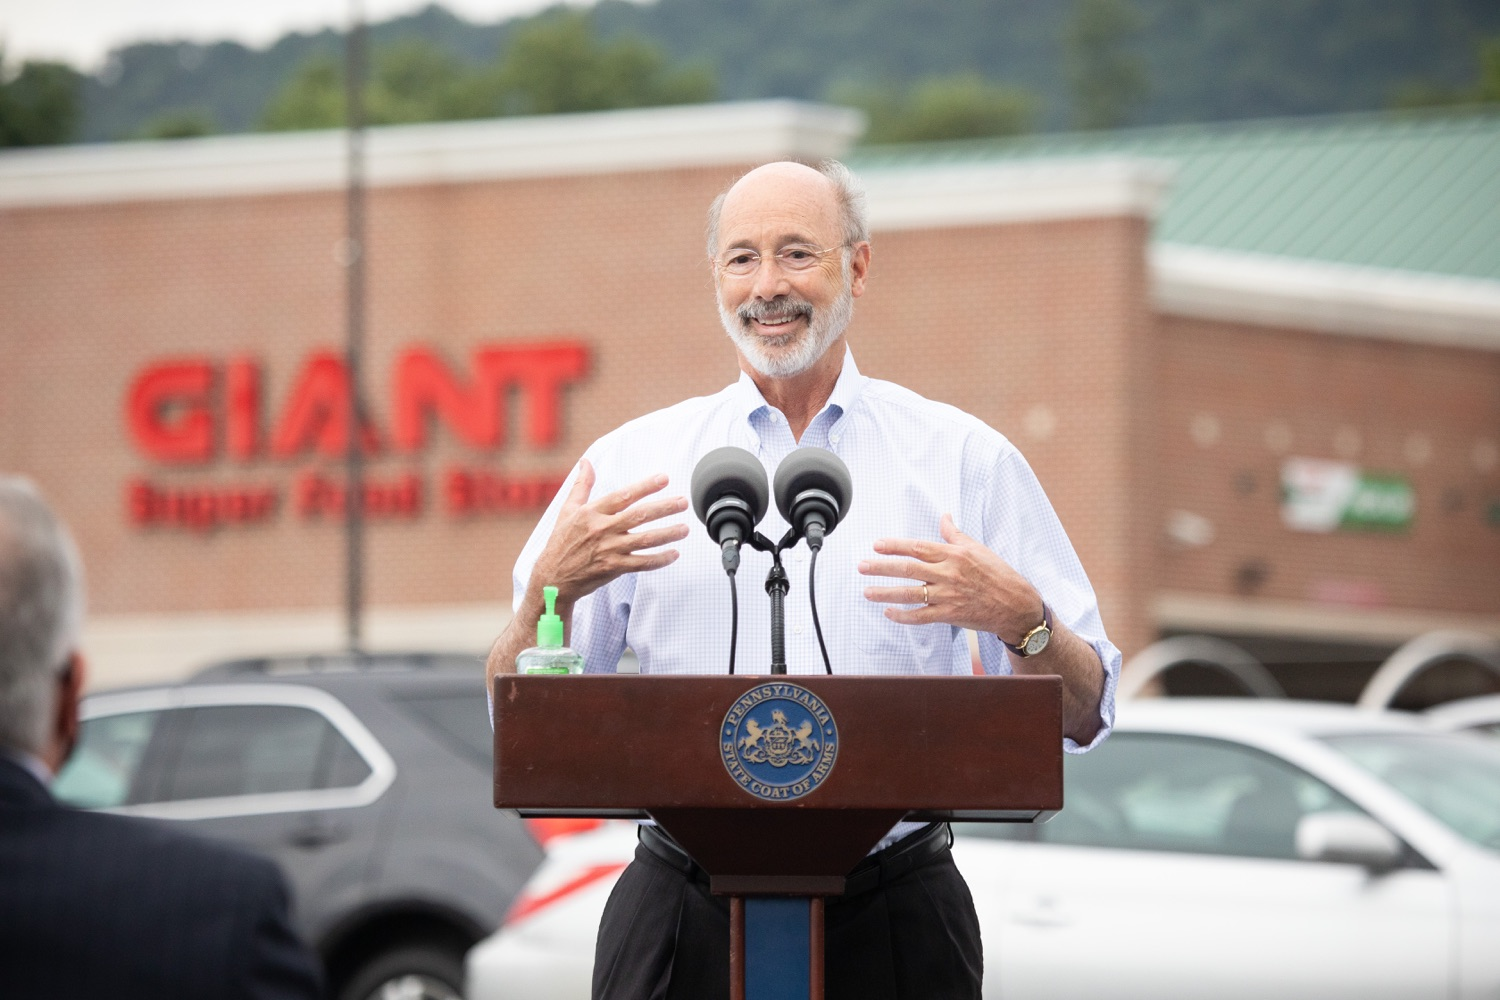 """<a href=""""https://filesource.wostreaming.net/commonwealthofpa/photo/18166_gov_cares_act_dz_03.jpg"""" target=""""_blank"""">⇣Download Photo<br></a>Pennsylvania Governor Tom Wolf speaking to reporters at the announcement. Today, Governor Tom Wolf announced the availability of $50 million in grant funding to help employers provide hazard pay to employees in life-sustaining occupations during the COVID-19 pandemic. Hazard pay is intended to keep front-line employees working in vital industry sectors across Pennsylvania.  Harrisburg, PA  July 16, 2020"""